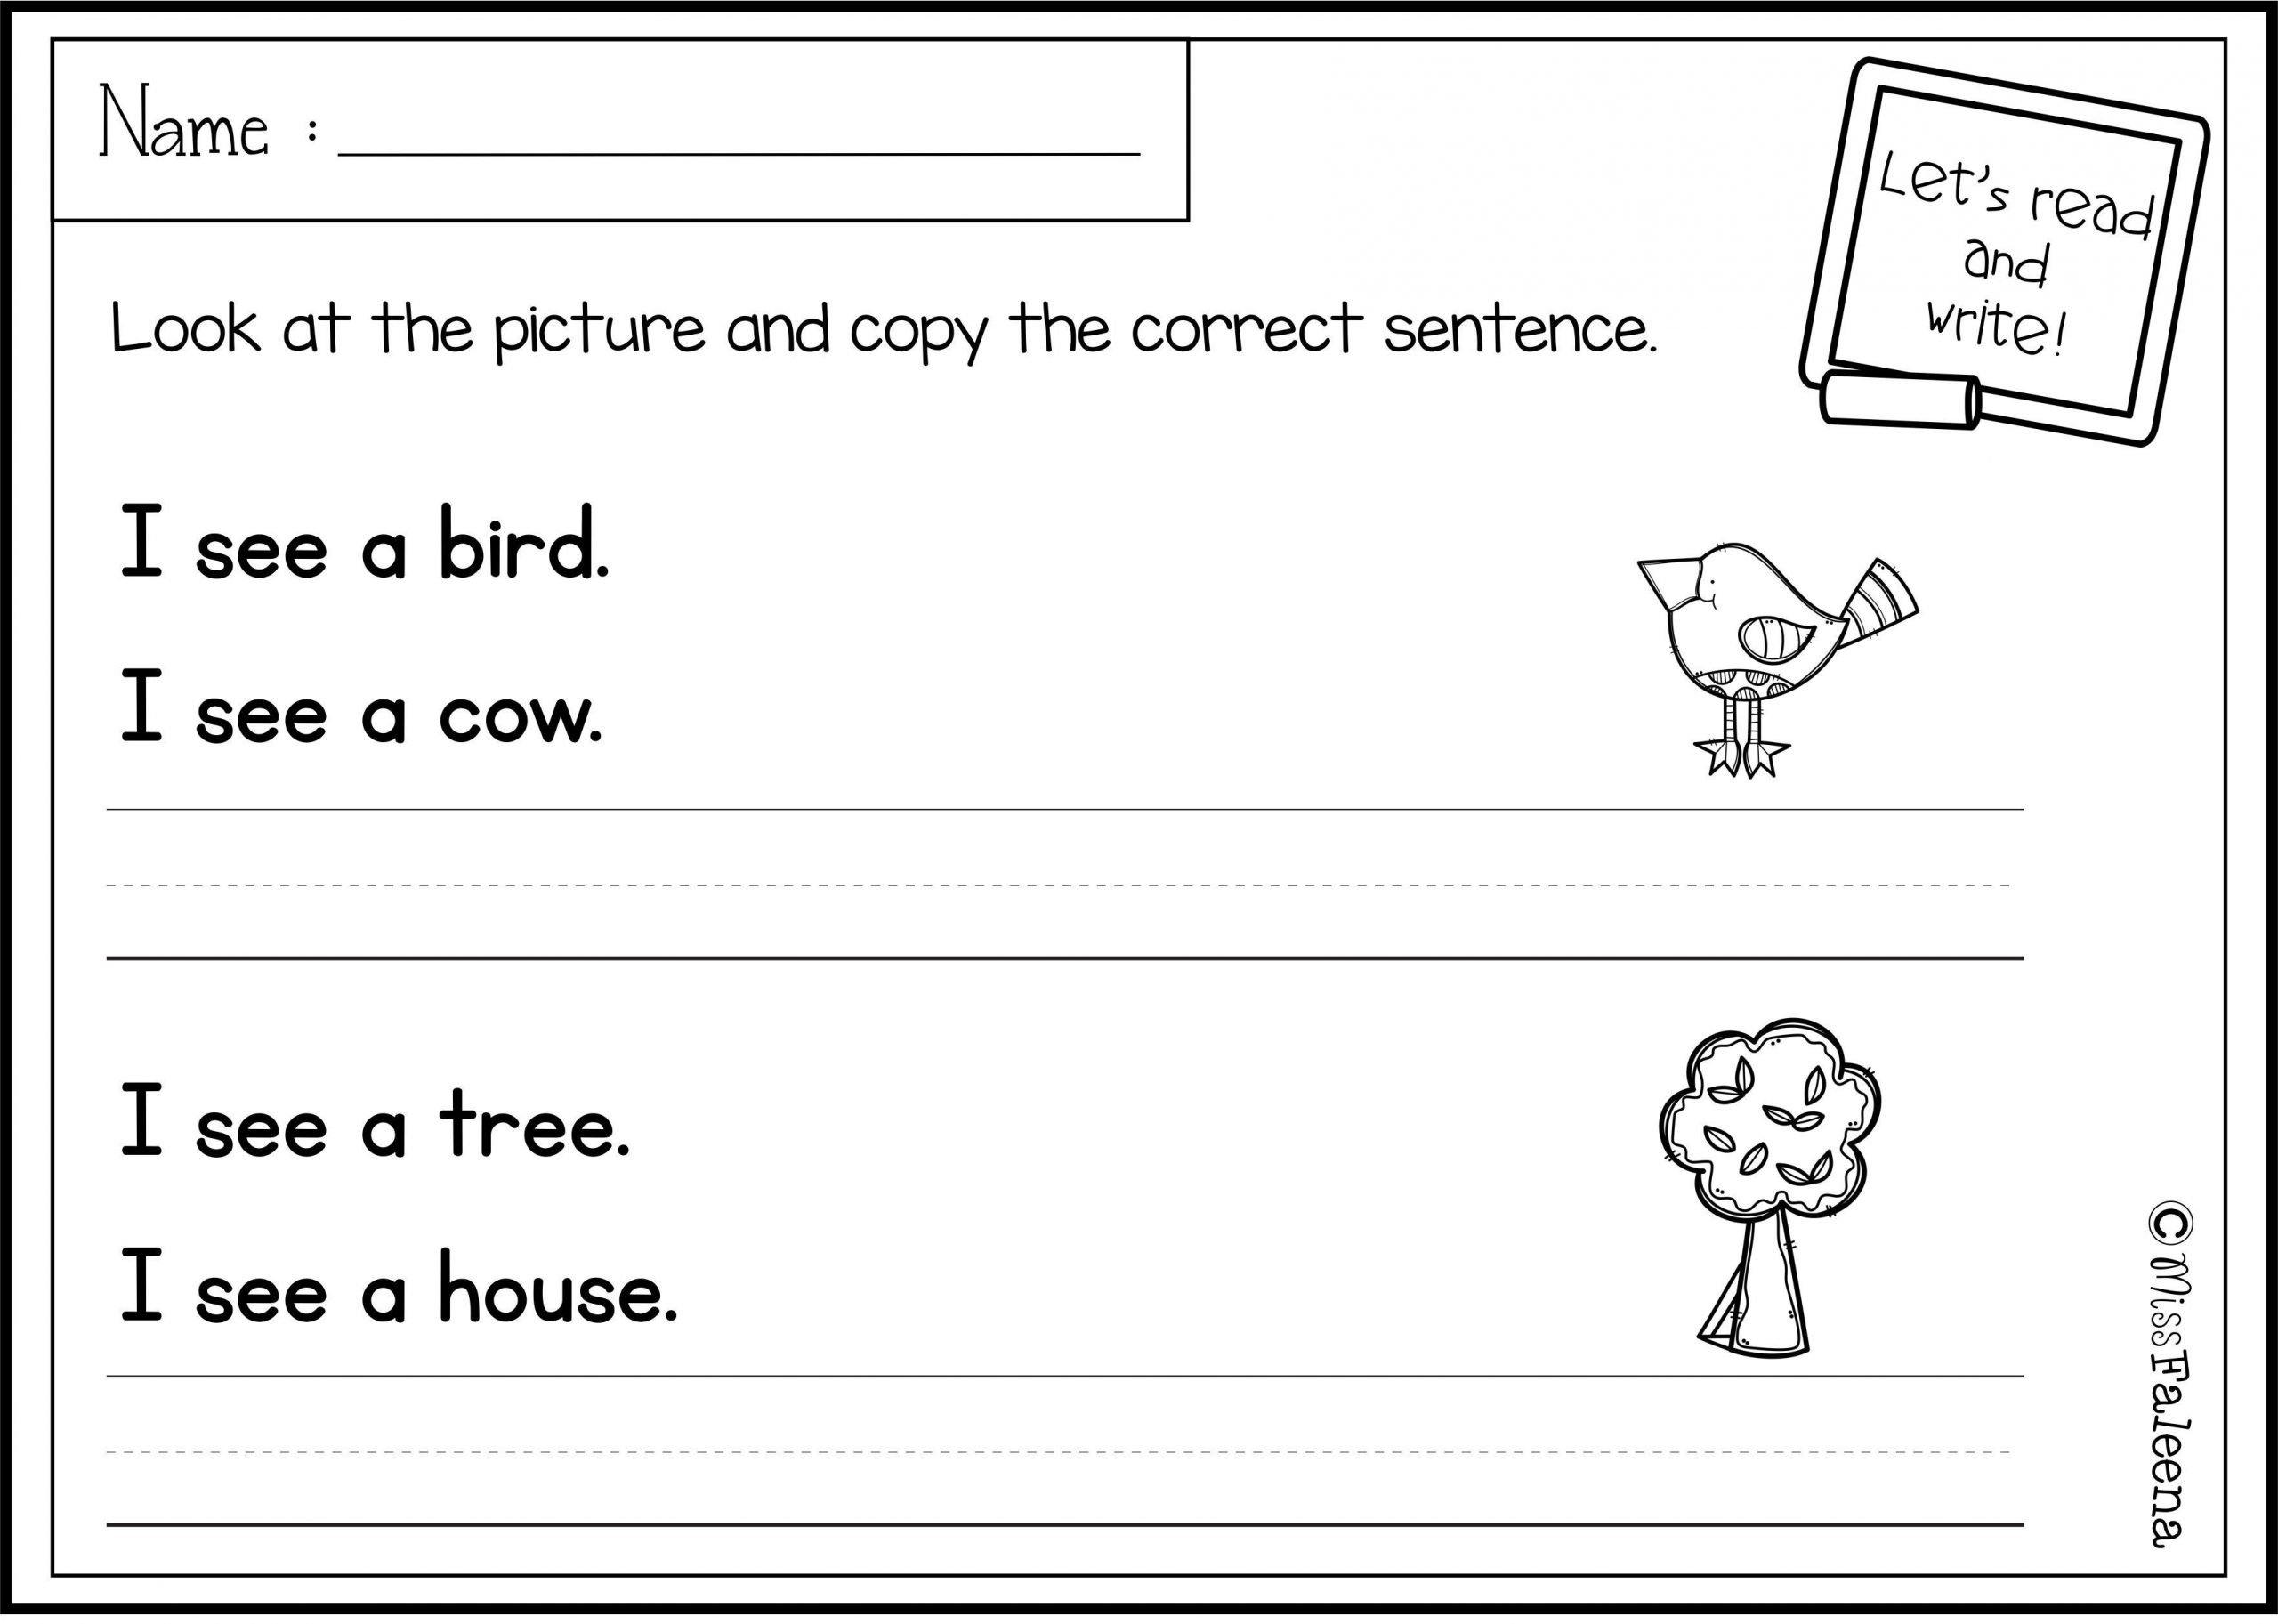 Esl Writing Worksheets Pdf there are 20 Pages Of Sentence Writing Worksheets In This